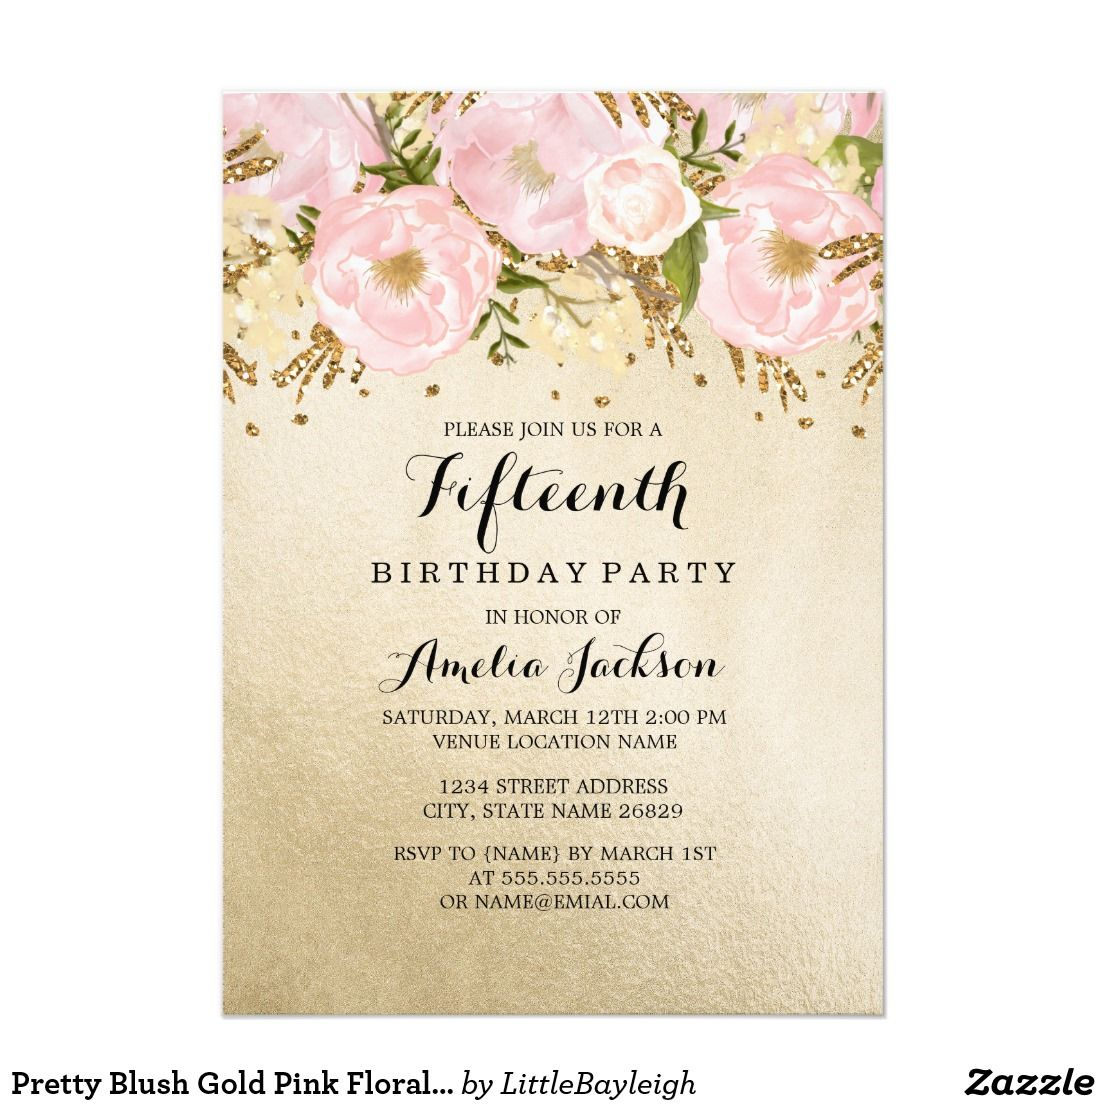 Pretty Blush Gold Pink Fl 15th Birthday Card More Invitations In The Little Bayleigh We Have Used Artwork From